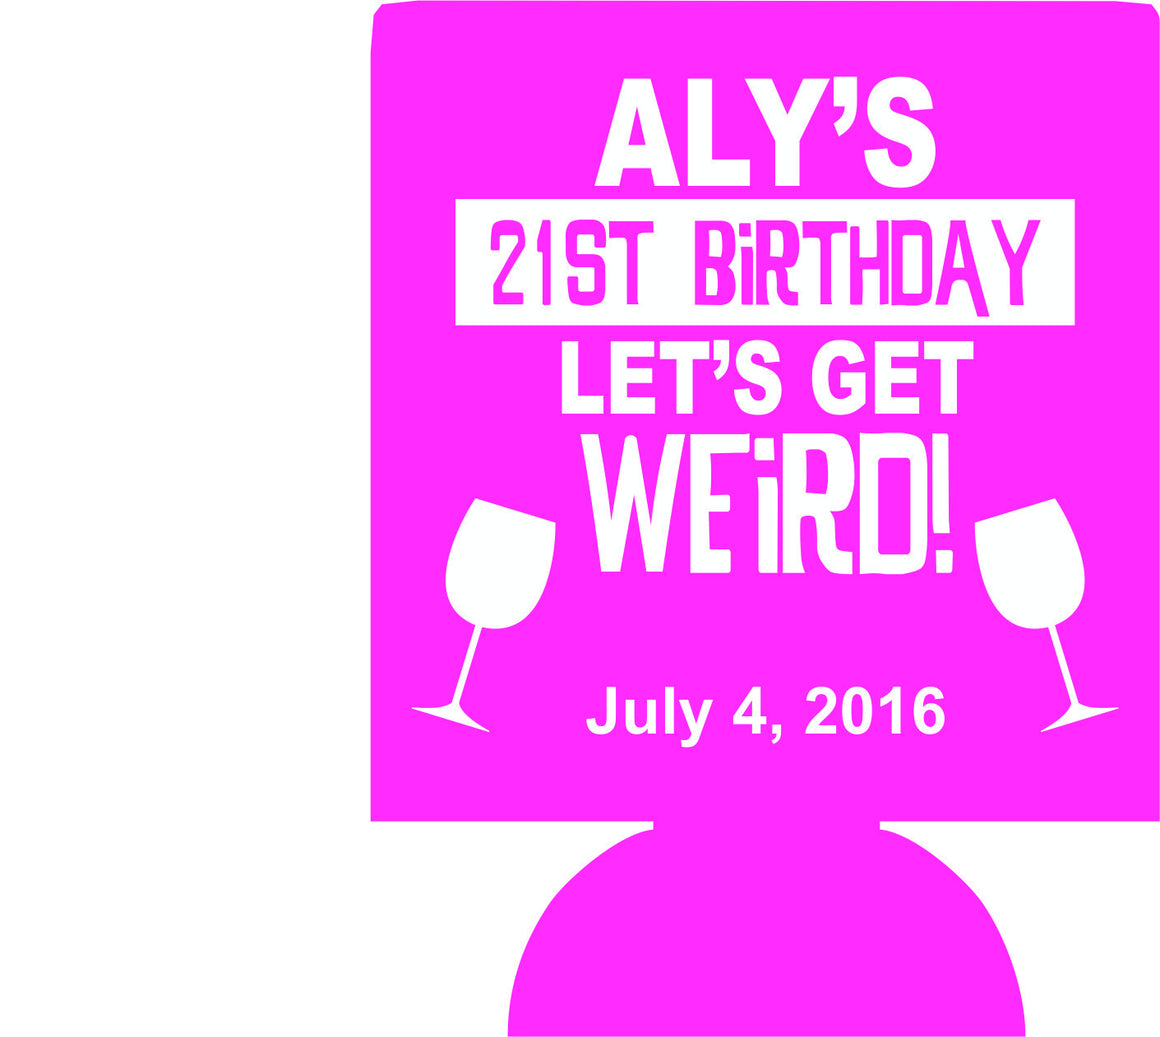 lets get weird 21st Birthday beer koozies custom can coolers